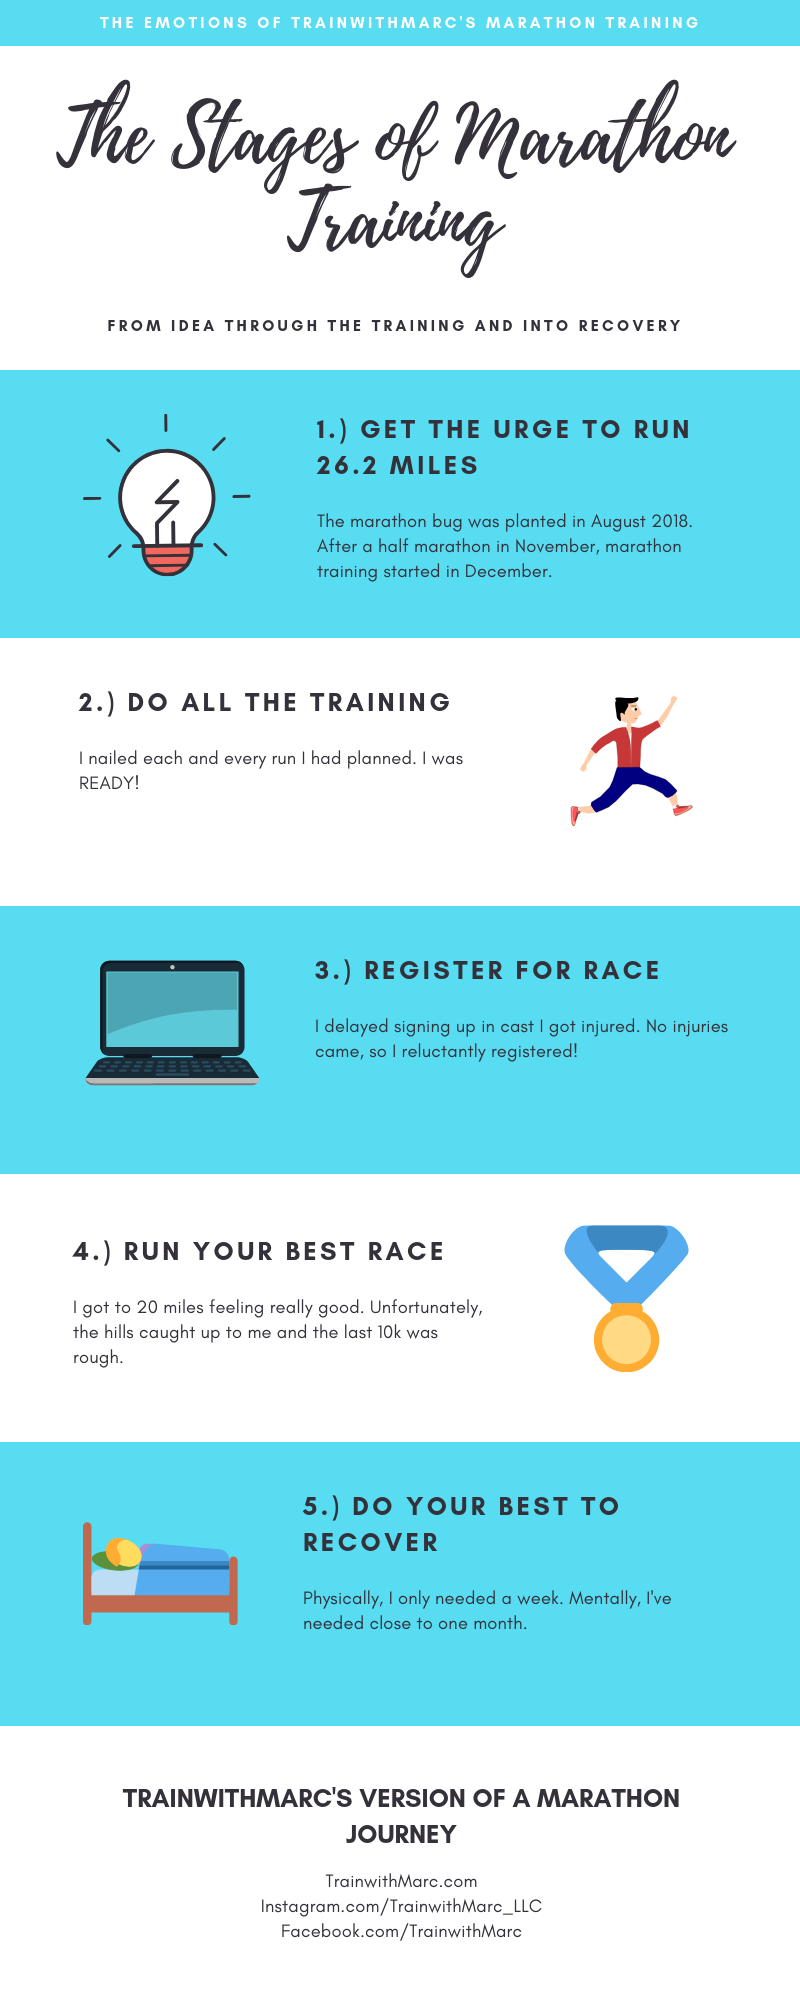 The 5 stages of emotions of a marathon runner